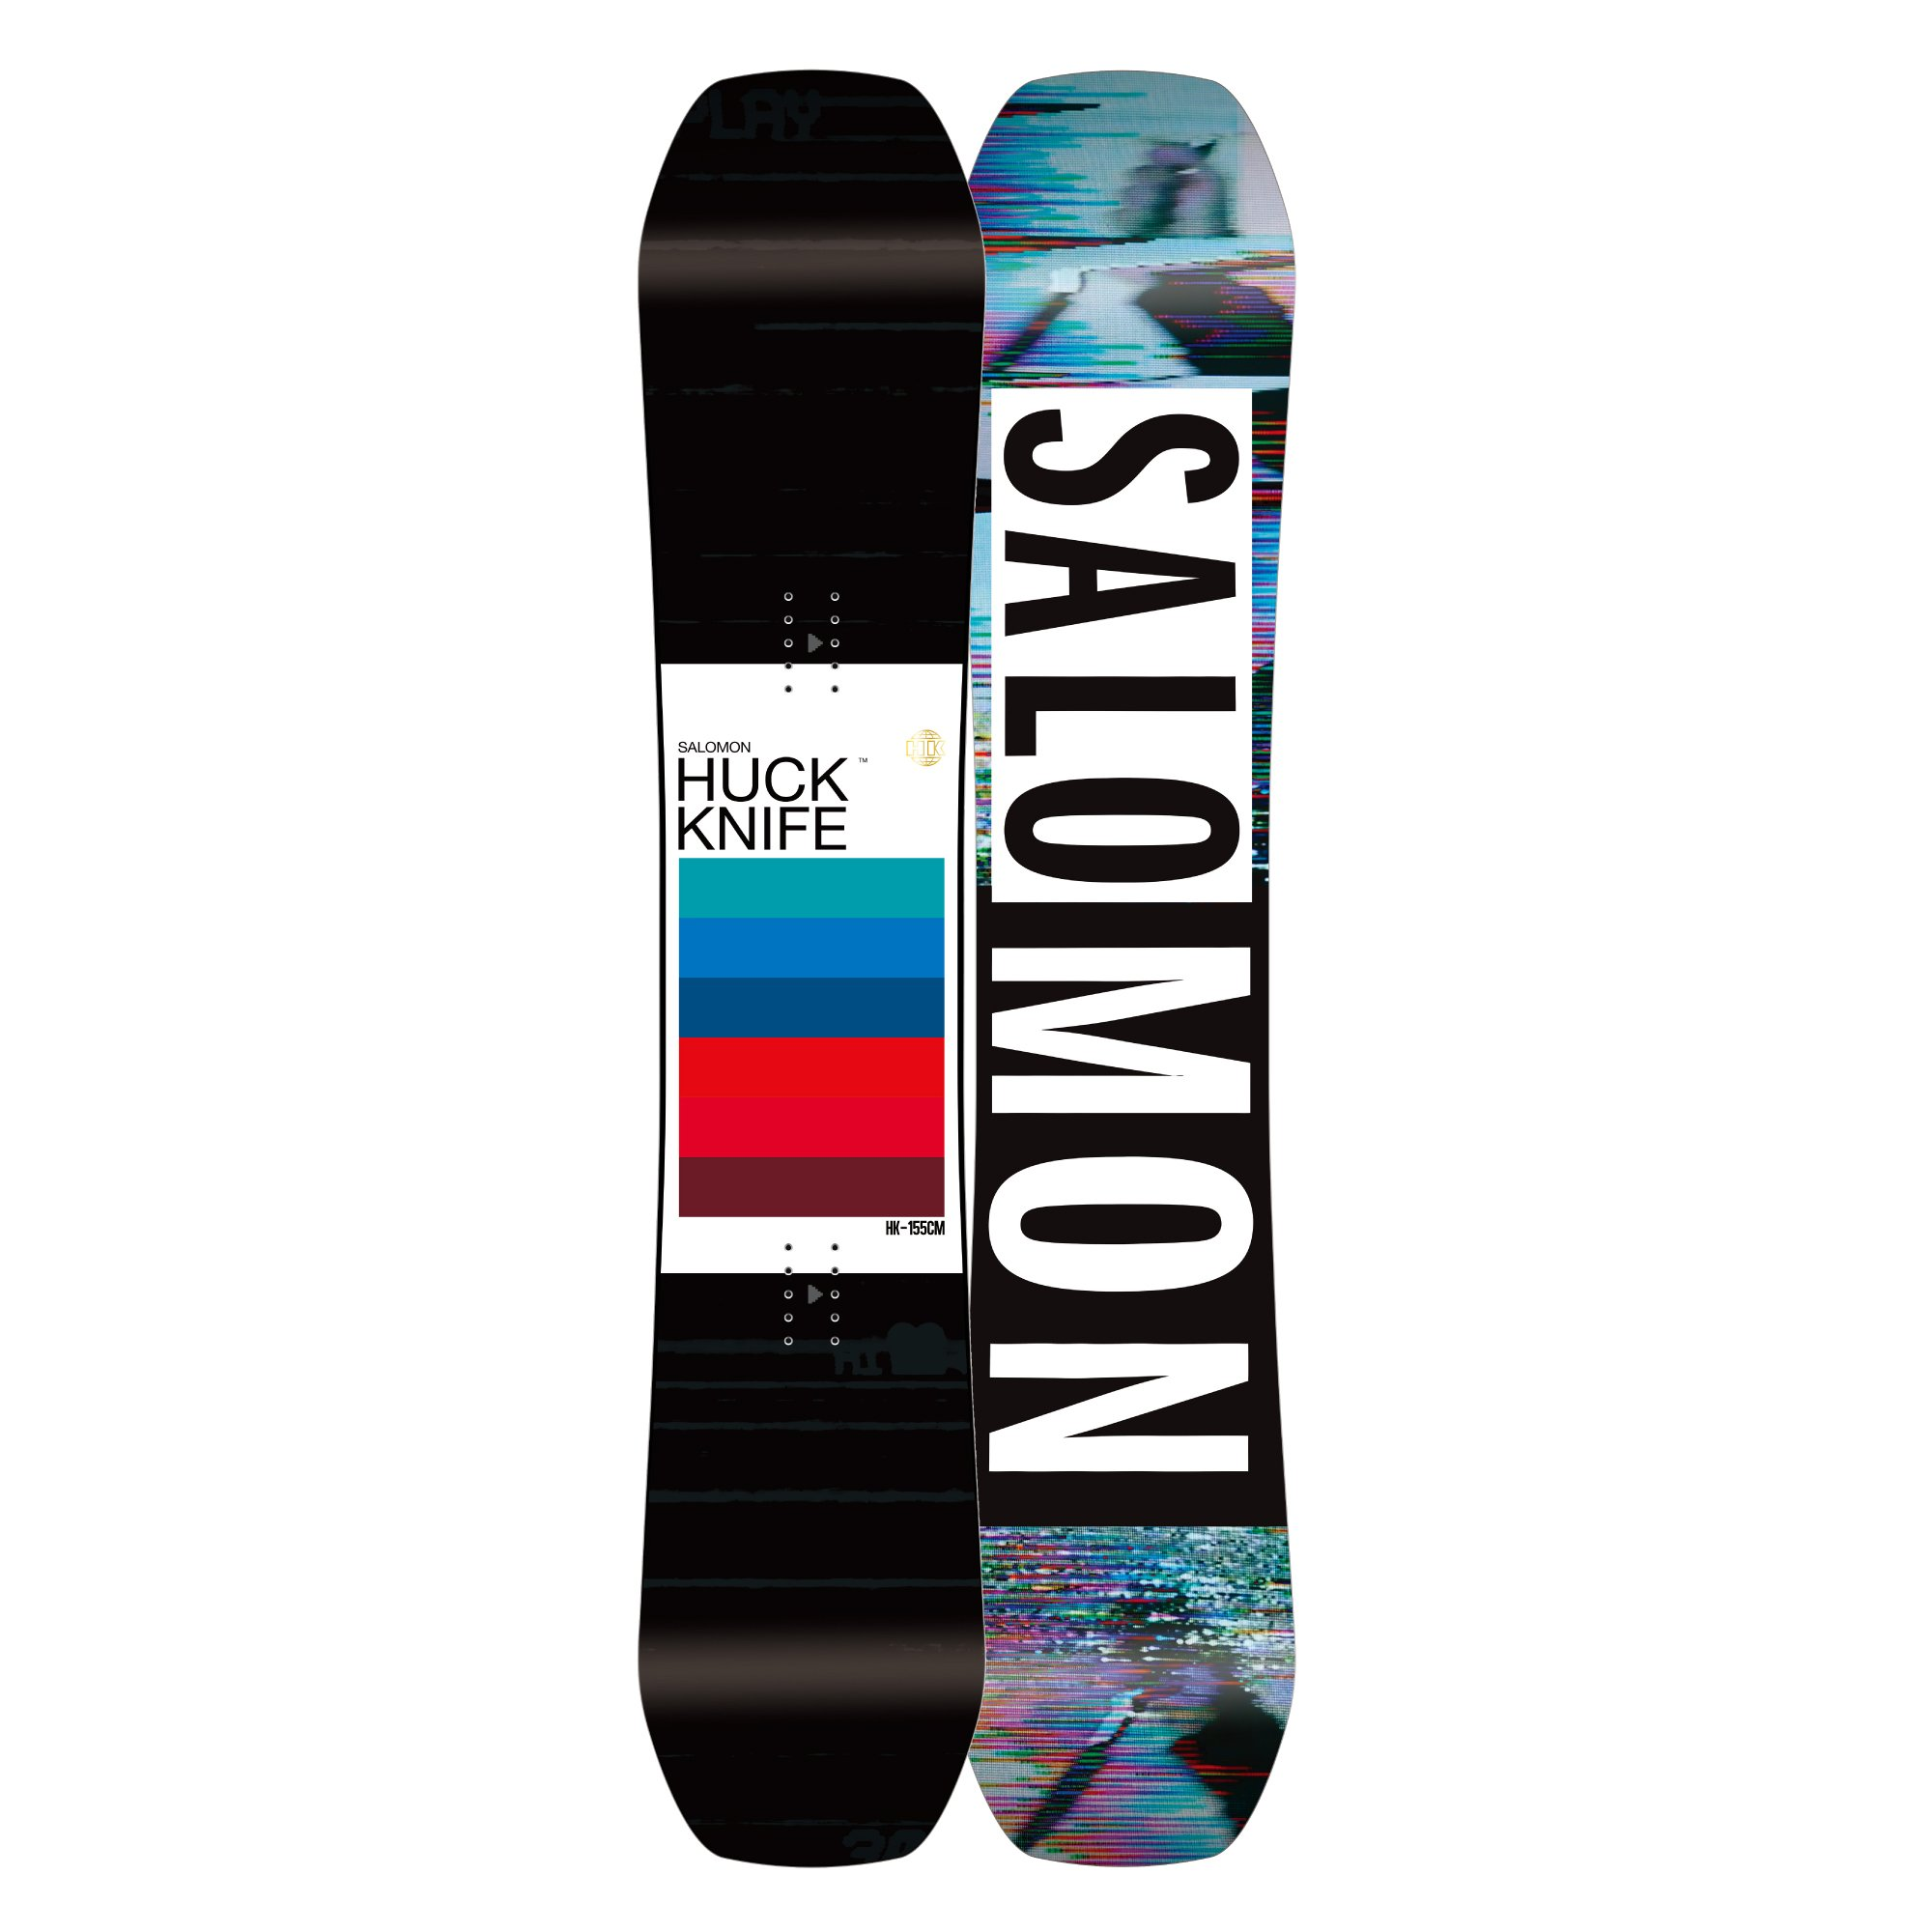 Salomon Huck Knife Wide Snowboard 2018 - 158cm Wide